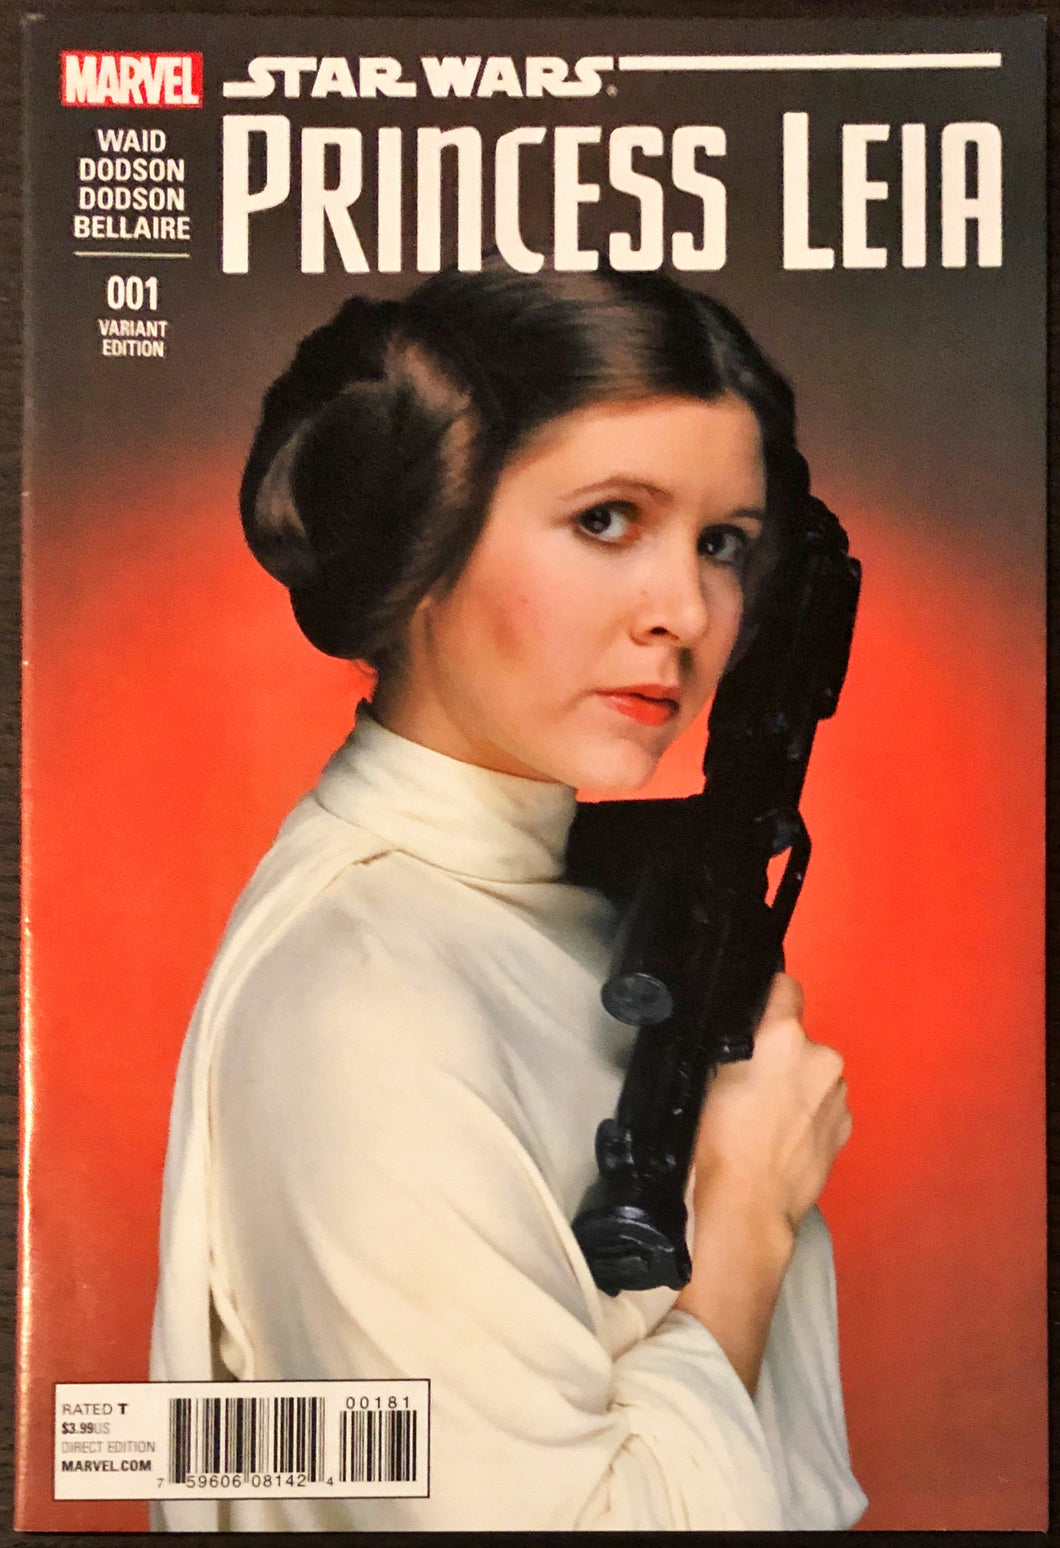 Star Wars: Princess Leia #1 (Photo Variant) - HIGH/NM Grade